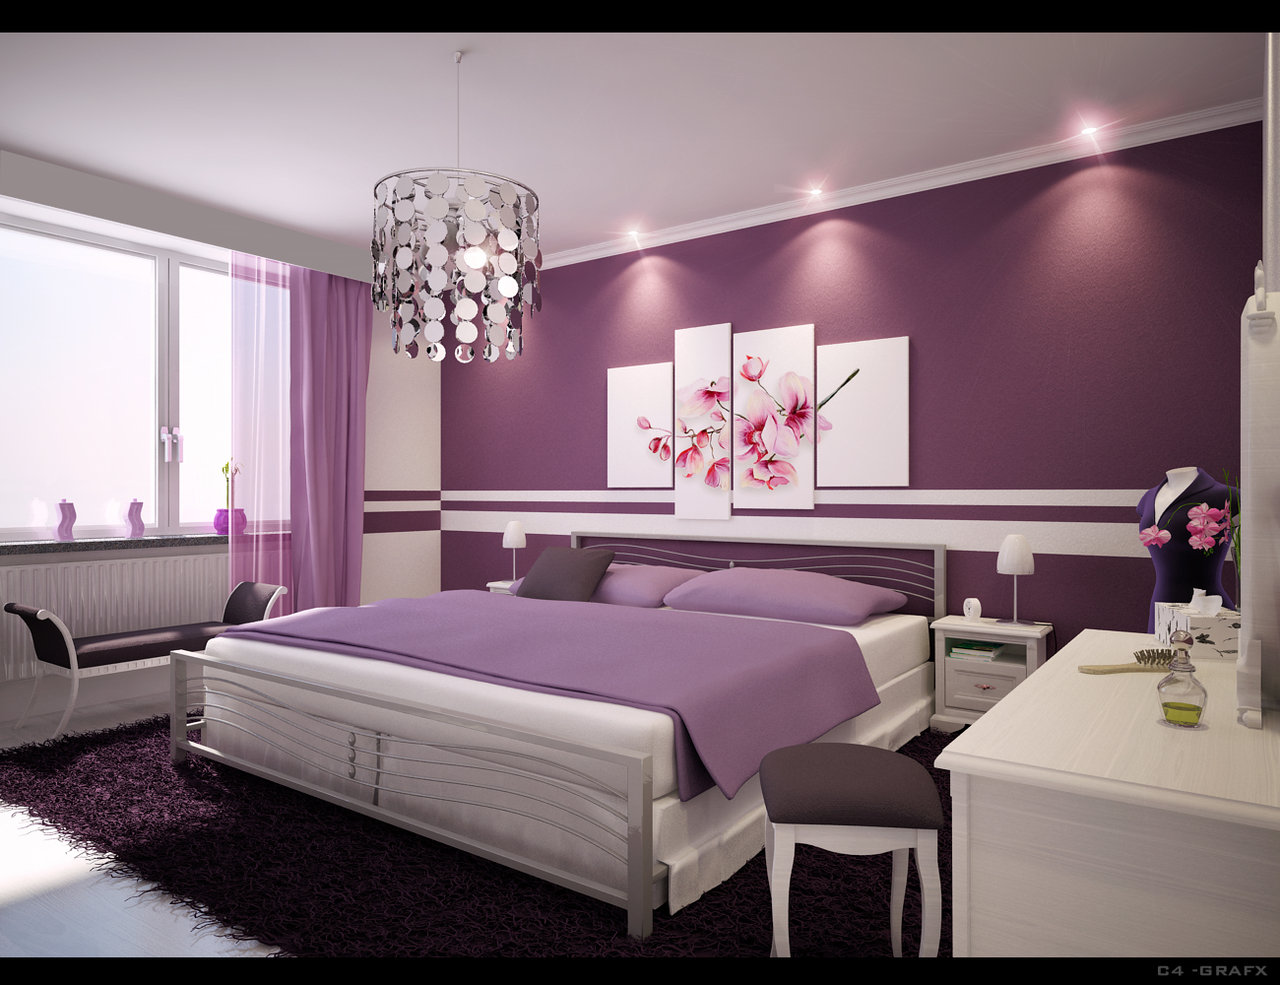 Images Of Bedroom Decor Adorable Of Purple Bedroom Design Ideas Pictures